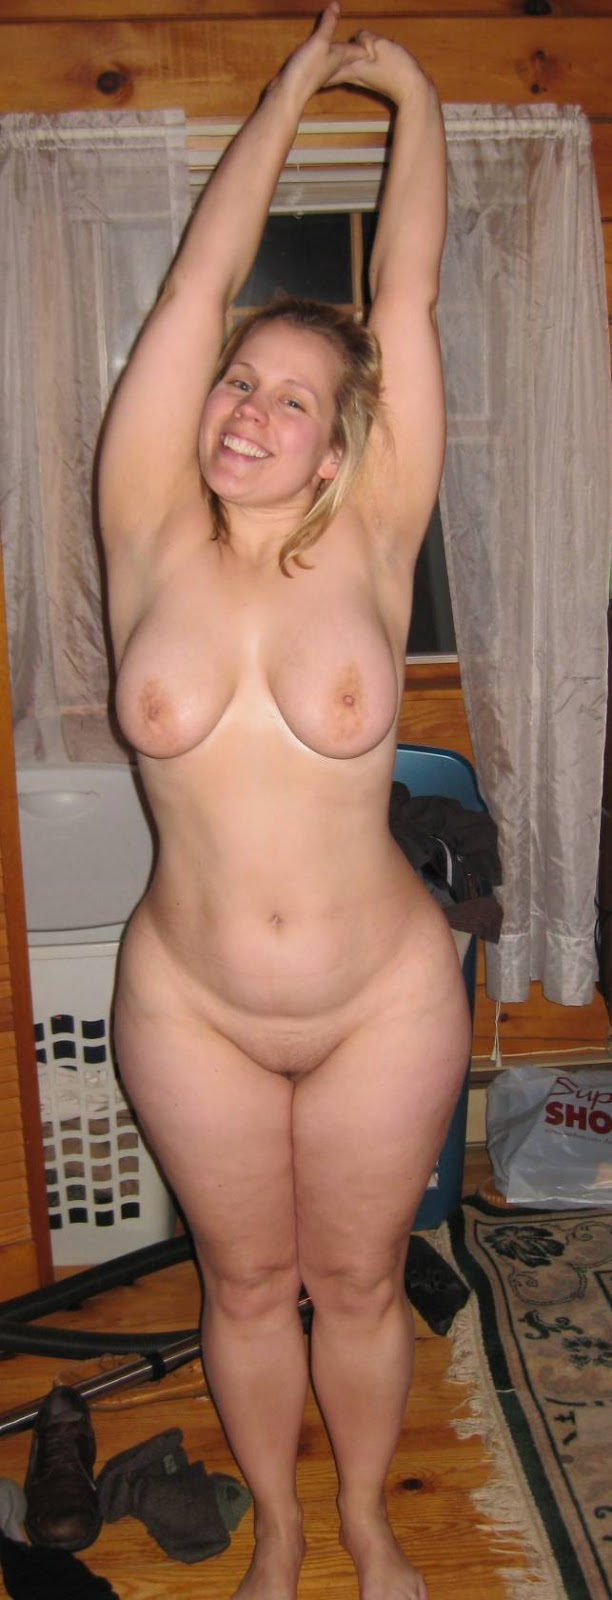 Teens nude in mirror group